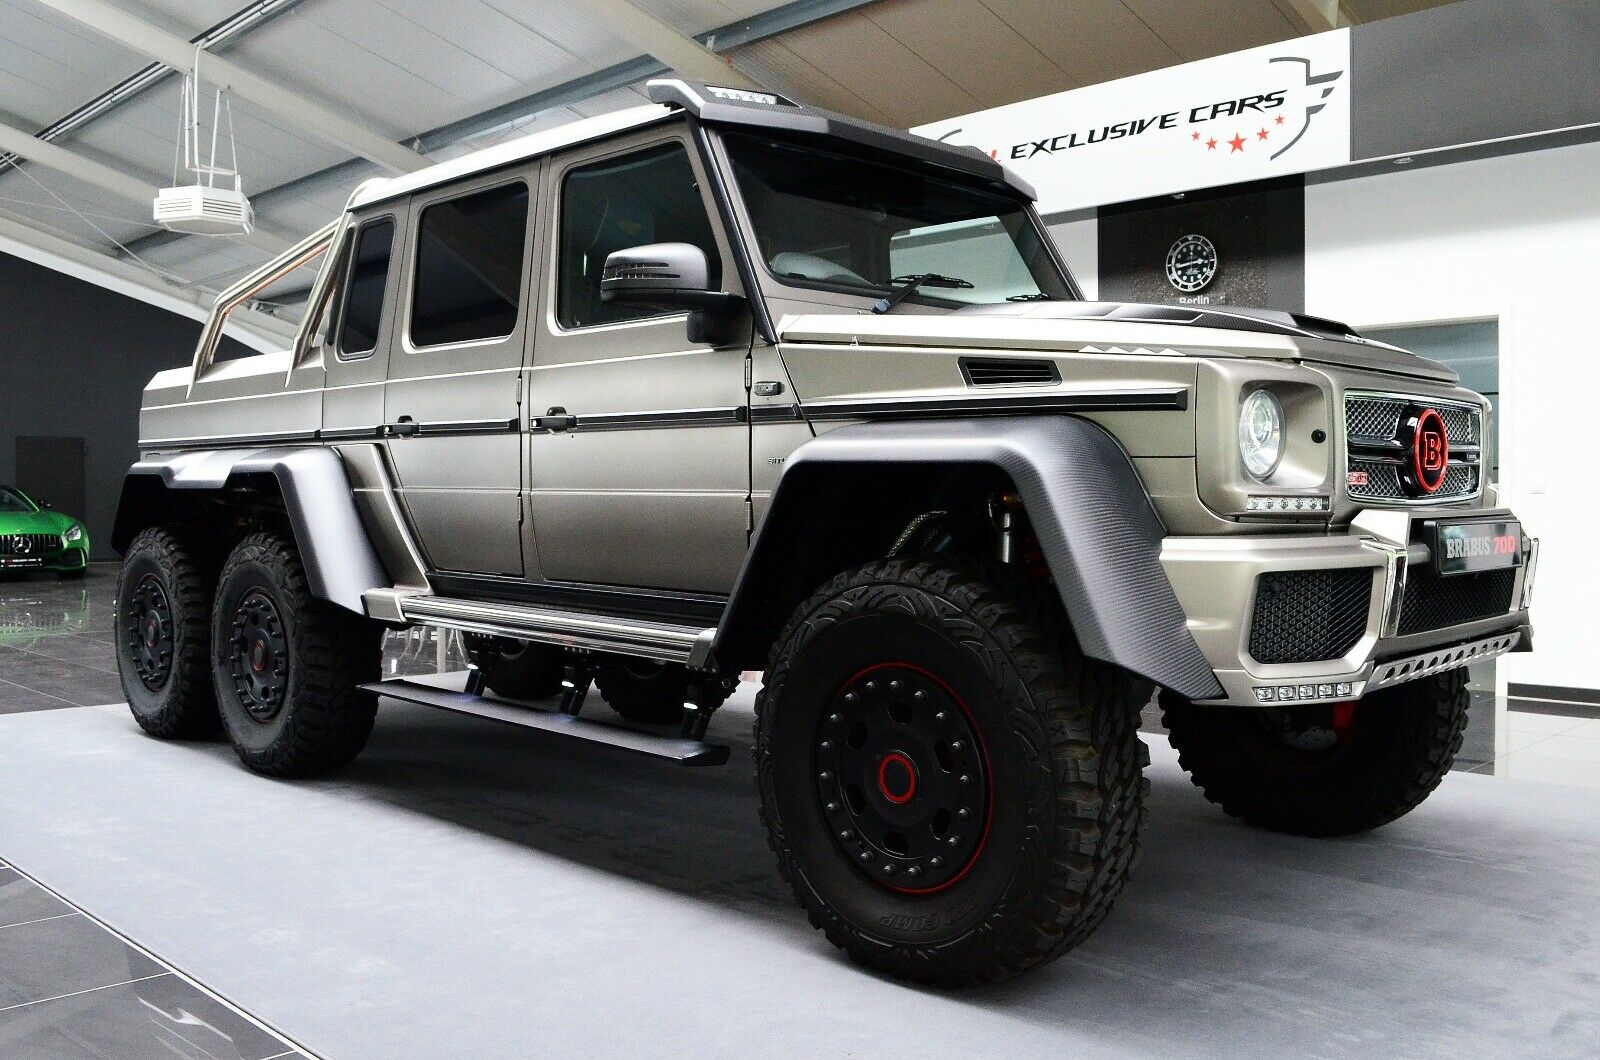 Mercedes-Benz G 63 AMG 6x6 Brabus700 Limited Edition 1of15 ...